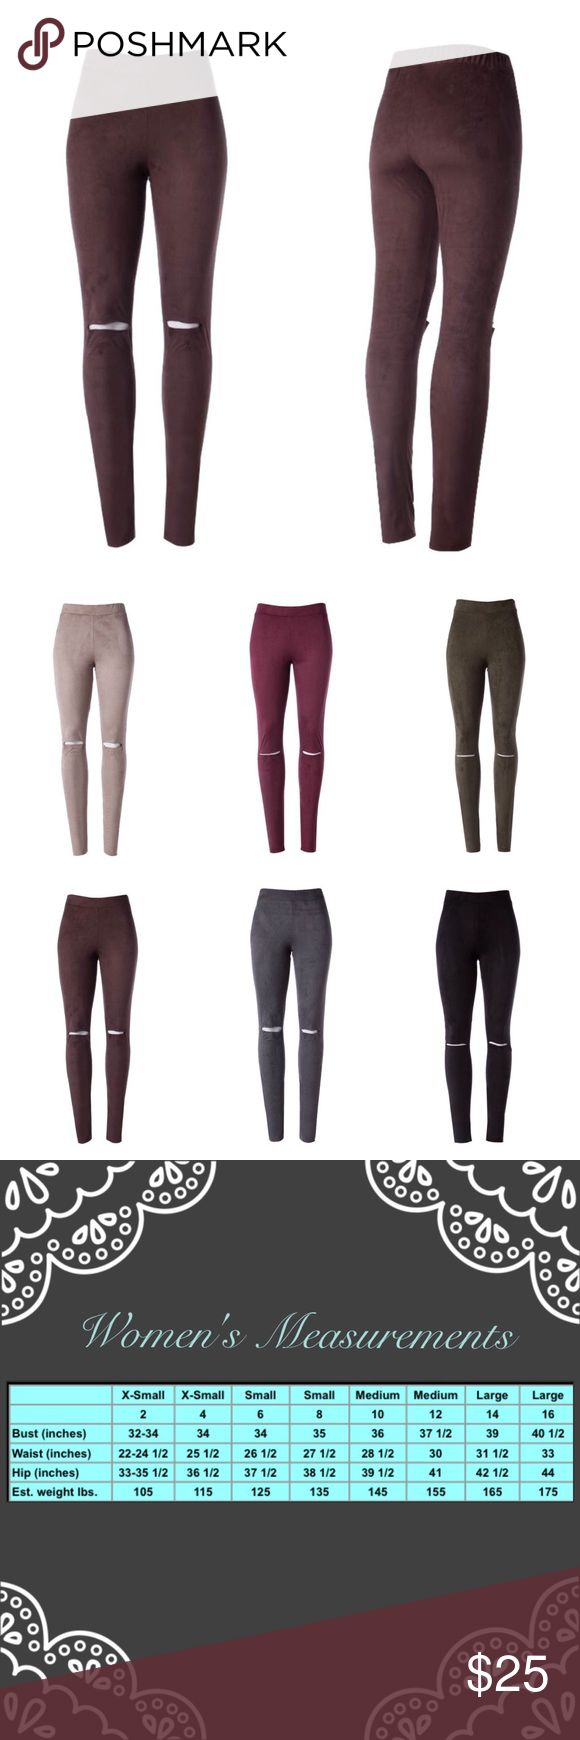 "BROWN High Rise Suede Leggings With Slit Detail High rise elastic waist, slit by knee, suede knit skinny pants.  🔸96% Polyester 4% Spandex 🔸Made in USA 🔸Size Small Measurement: W: 13"" H: 38"" Inseam: 29""  Available in the following colors: Brown, Charcoal, Olive, Taupe, Wine	  ✔️Serious buyers please & No Low ballers!  To me it's asking half or more off an item is Low Balling.   ✔️Please understand the sizes listed on the size chart are different between manufacturers & suppliers & this…"